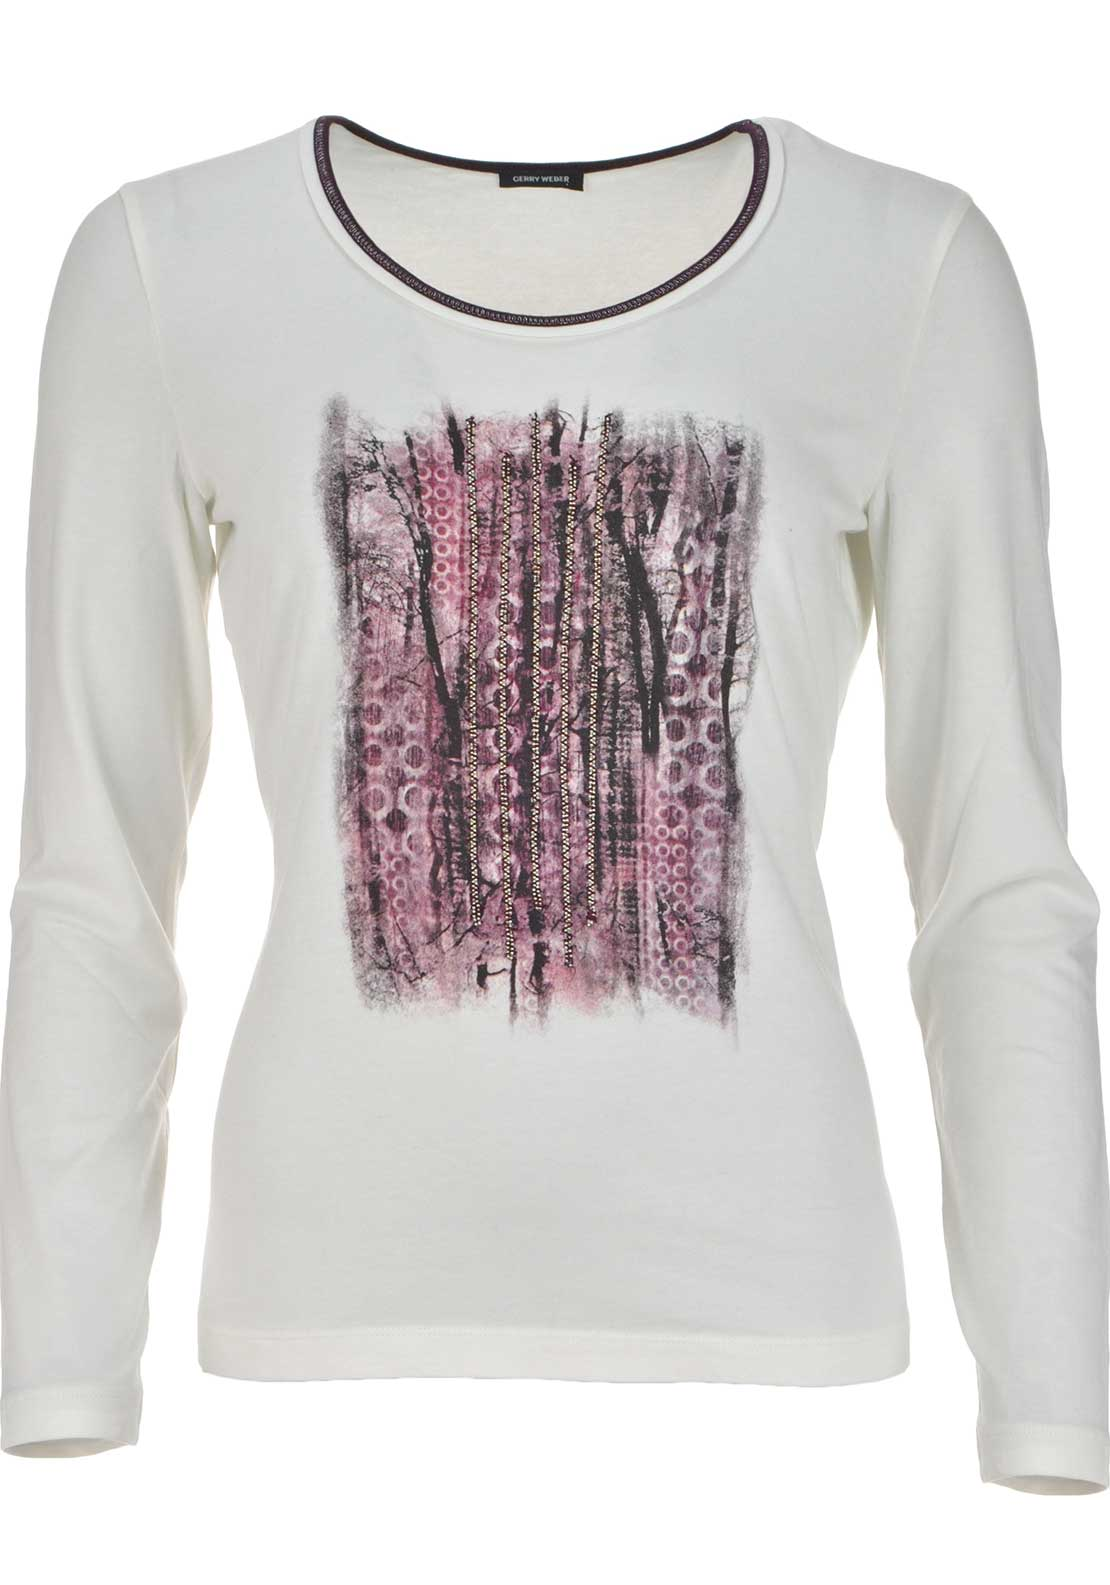 Gerry Weber Stud Embellished Printed Long Sleeve T-Shirt, Ivory